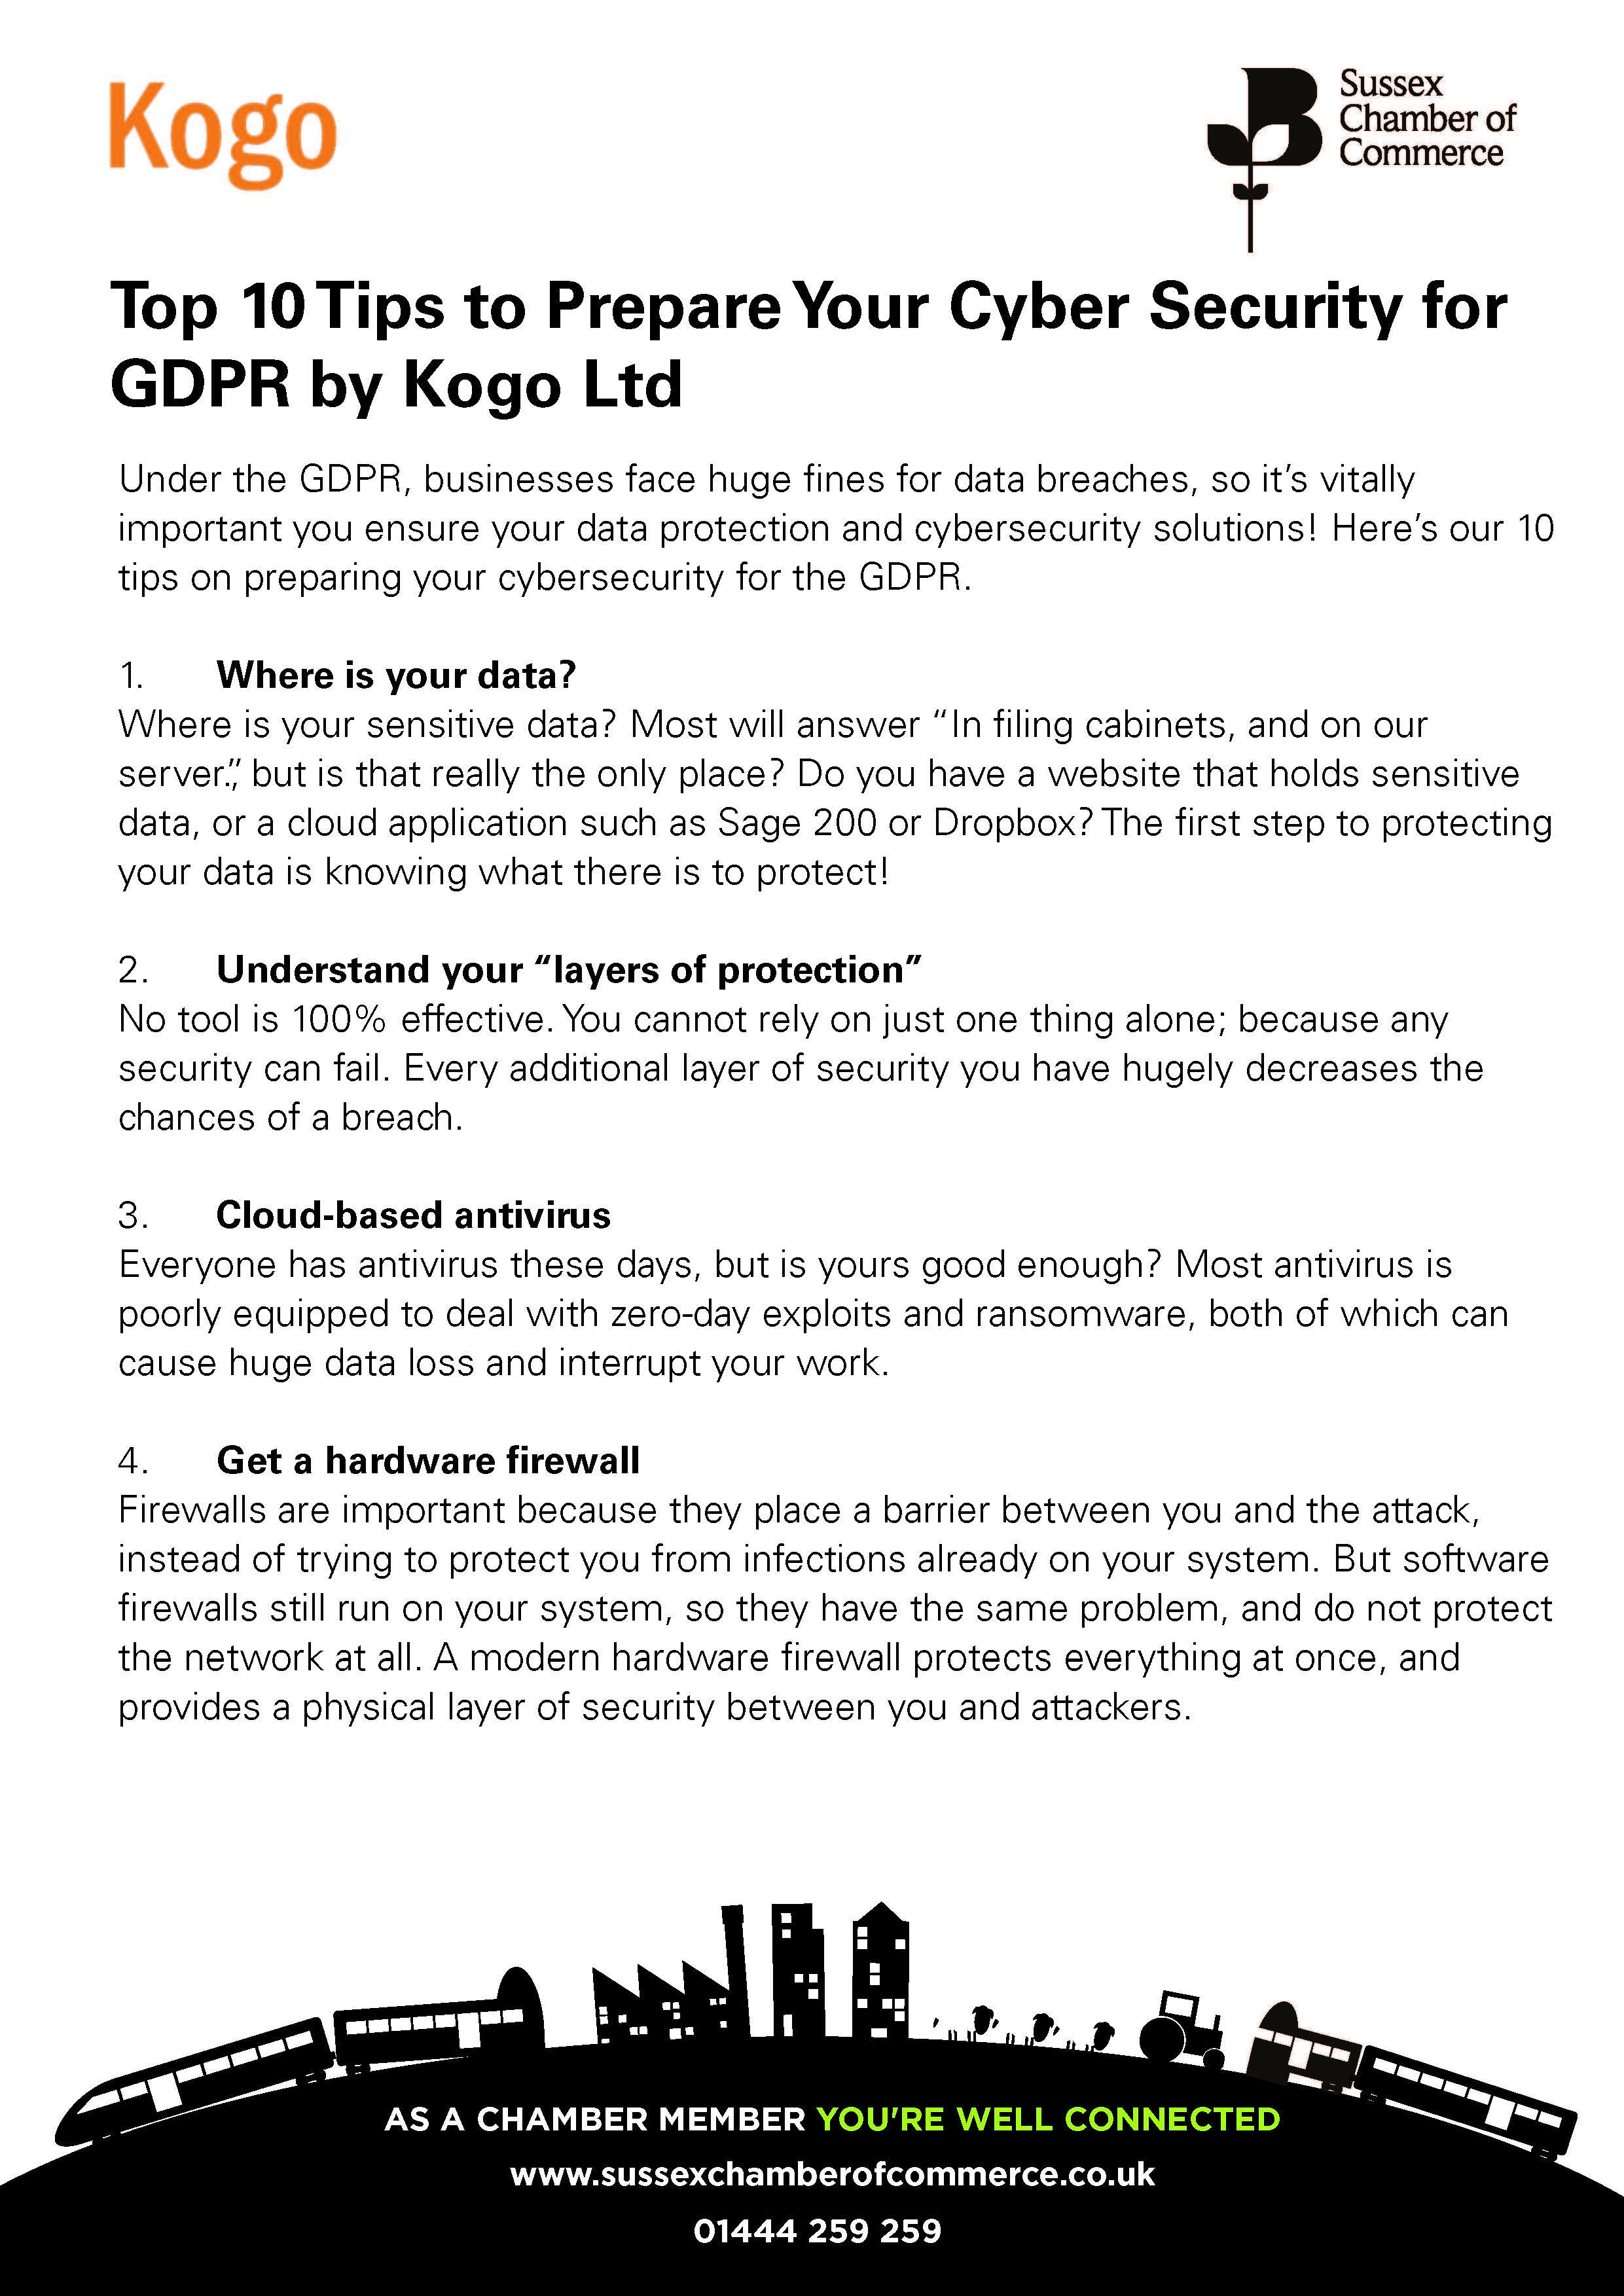 10_tips_to_prepare_your_cybersecurity_for_the_gdpr_v2_page_1_3508